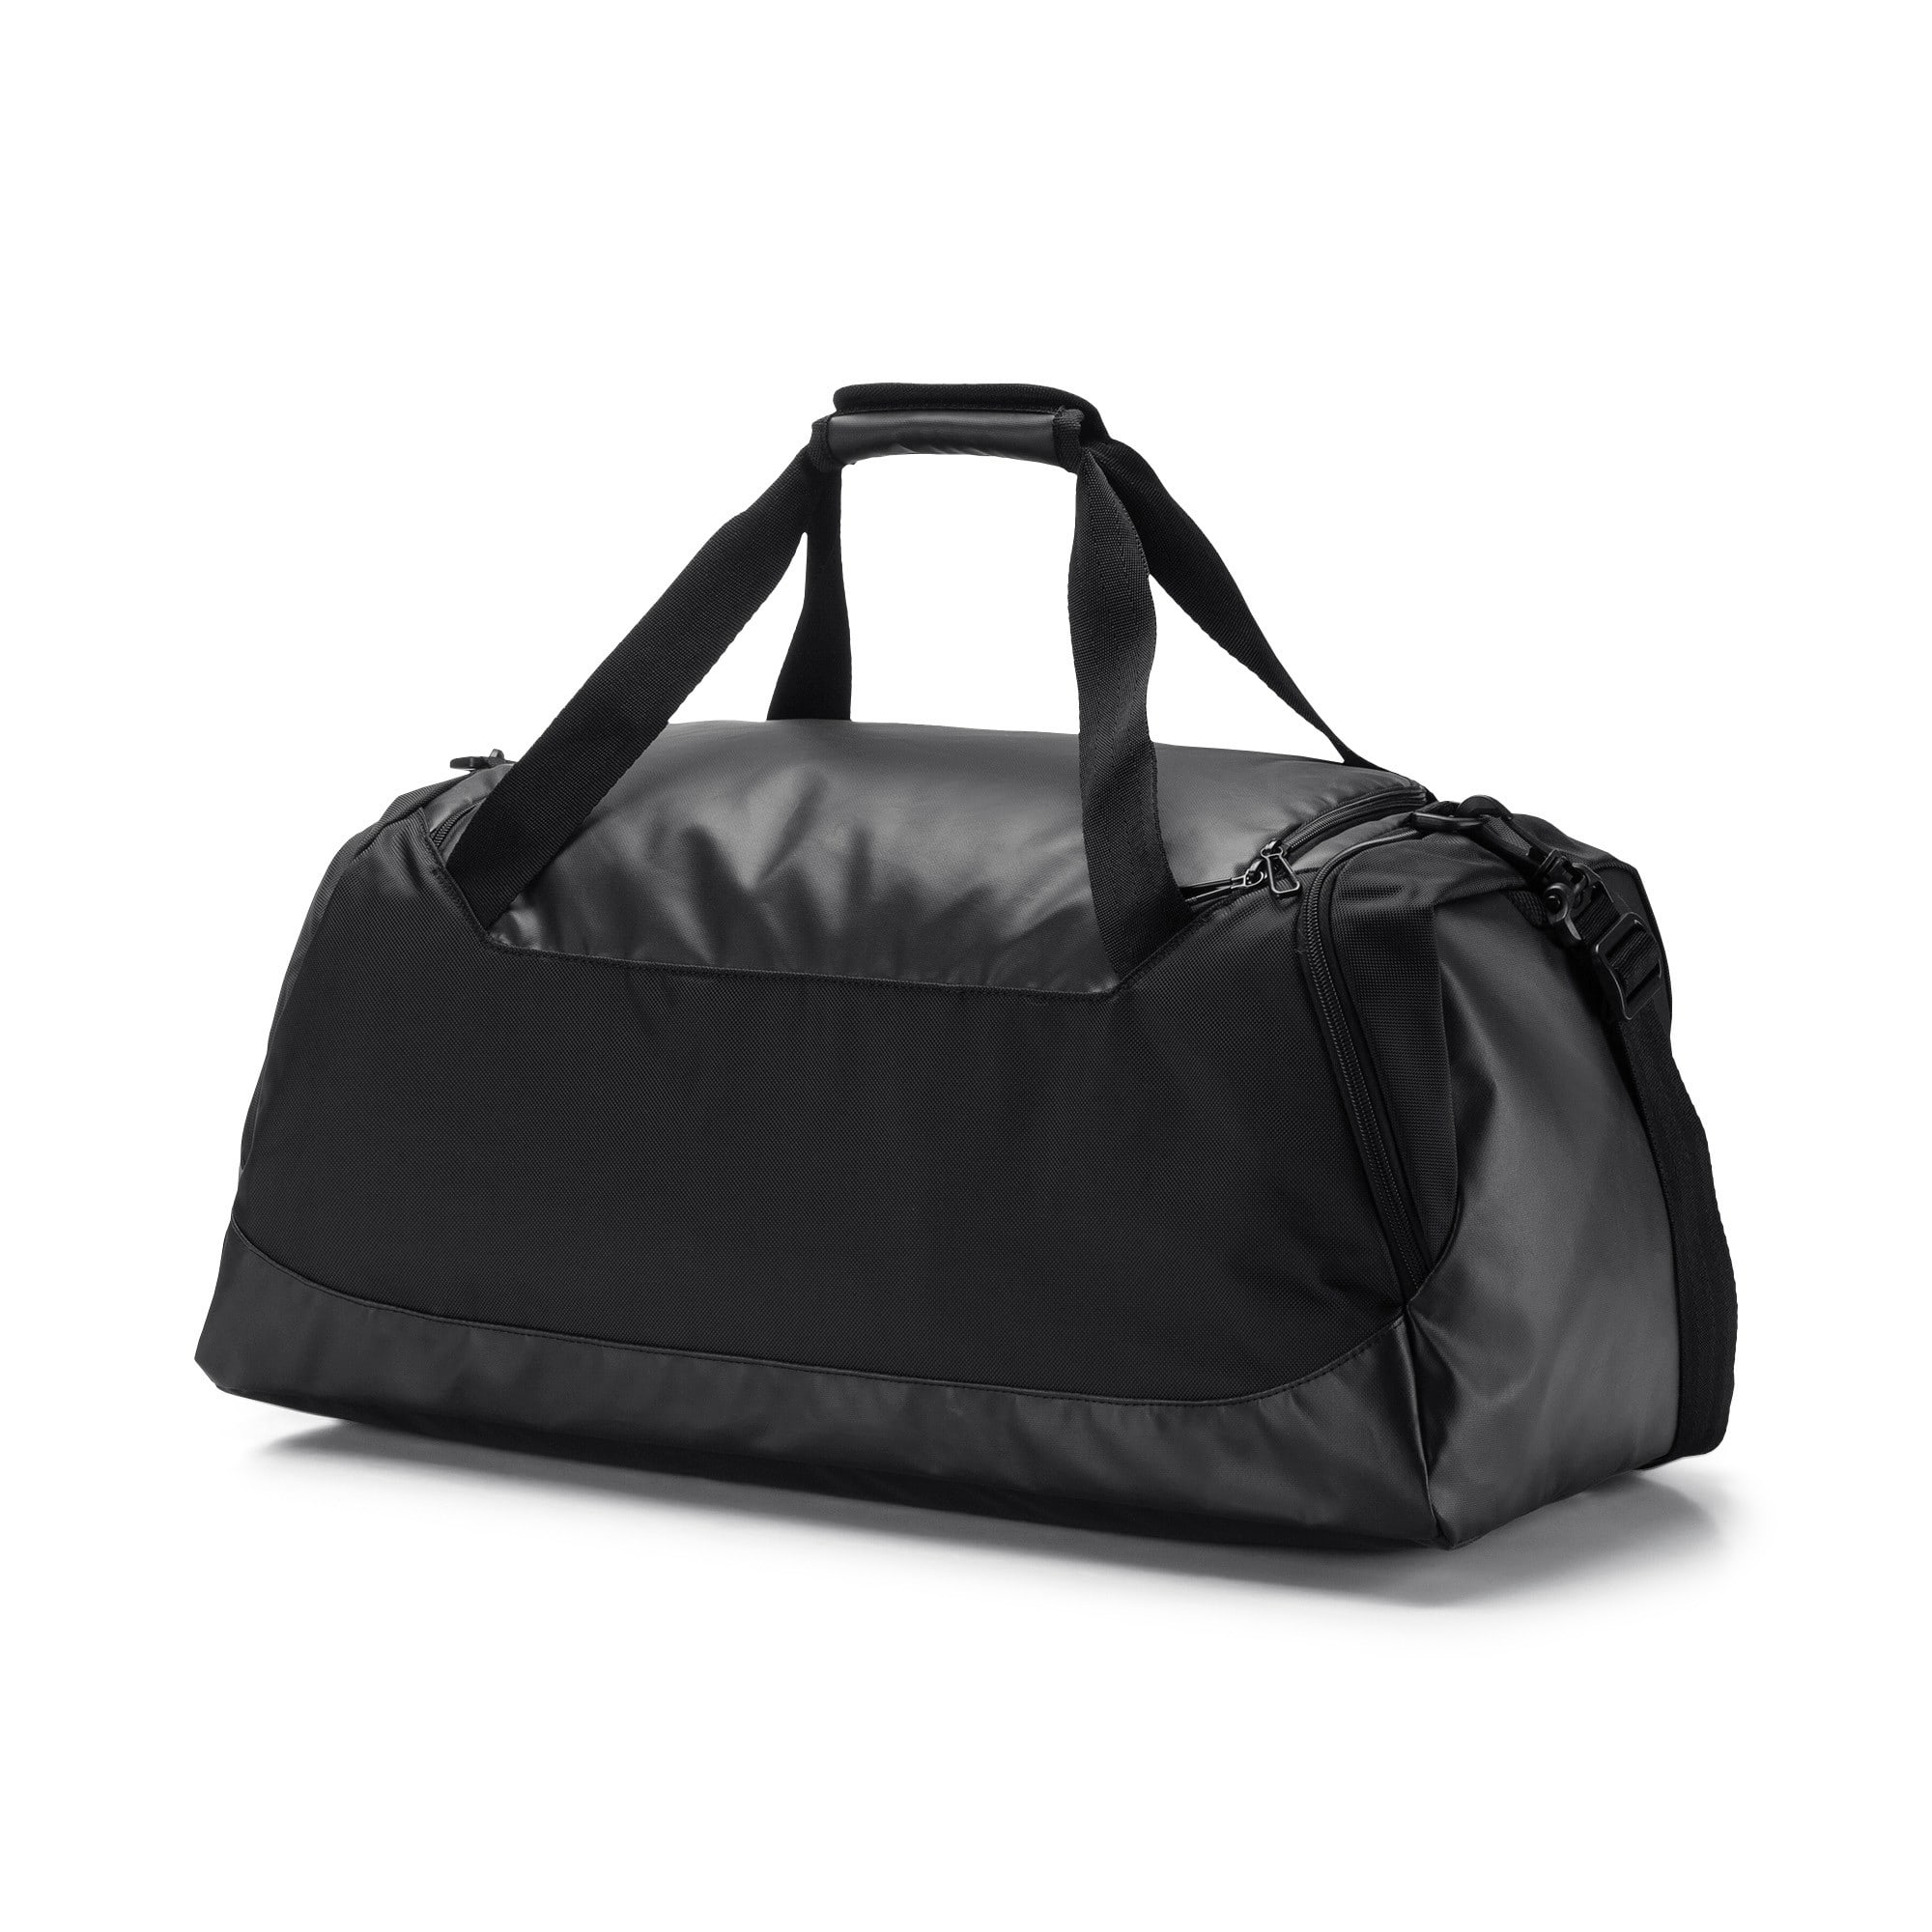 Thumbnail 2 of Energy Training Bag, Puma Black, medium